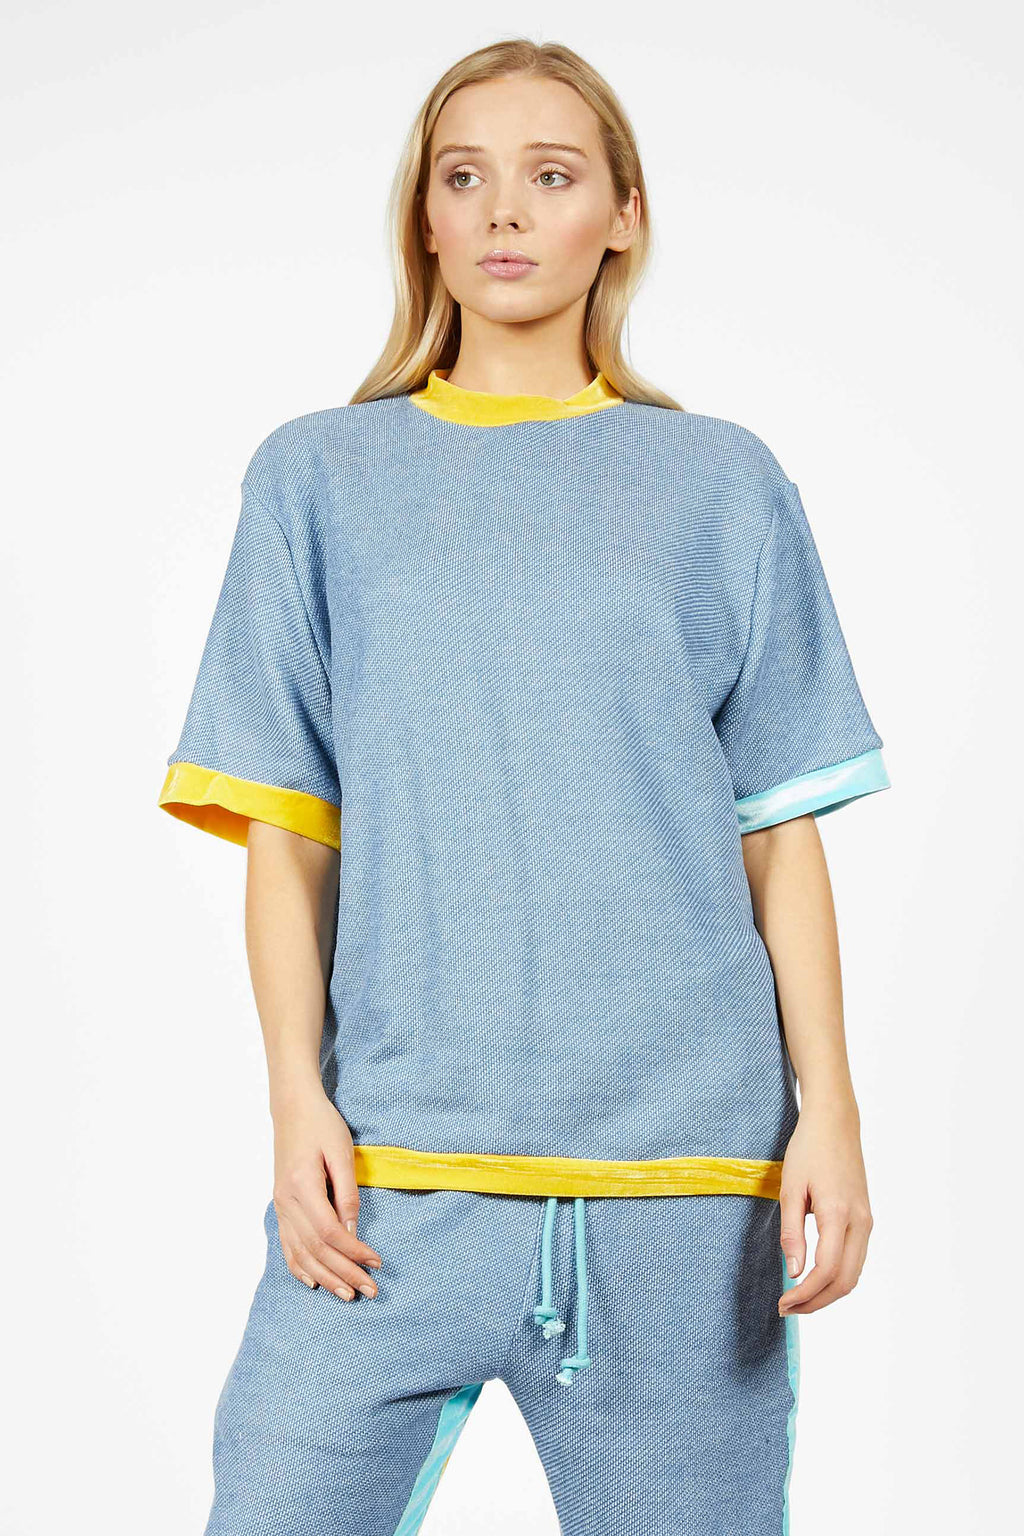 Unisex Heartbeat Colourblock T-Shirt